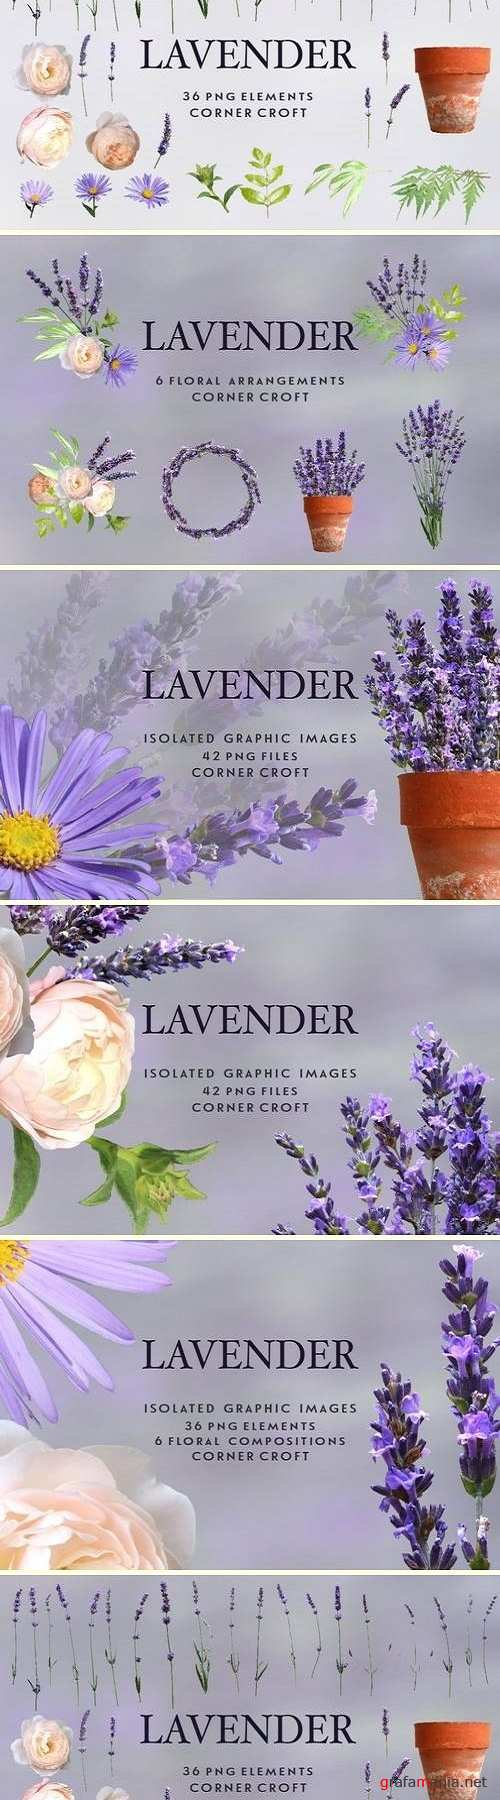 Lavender clipart, Isolated Lavender - 2795130